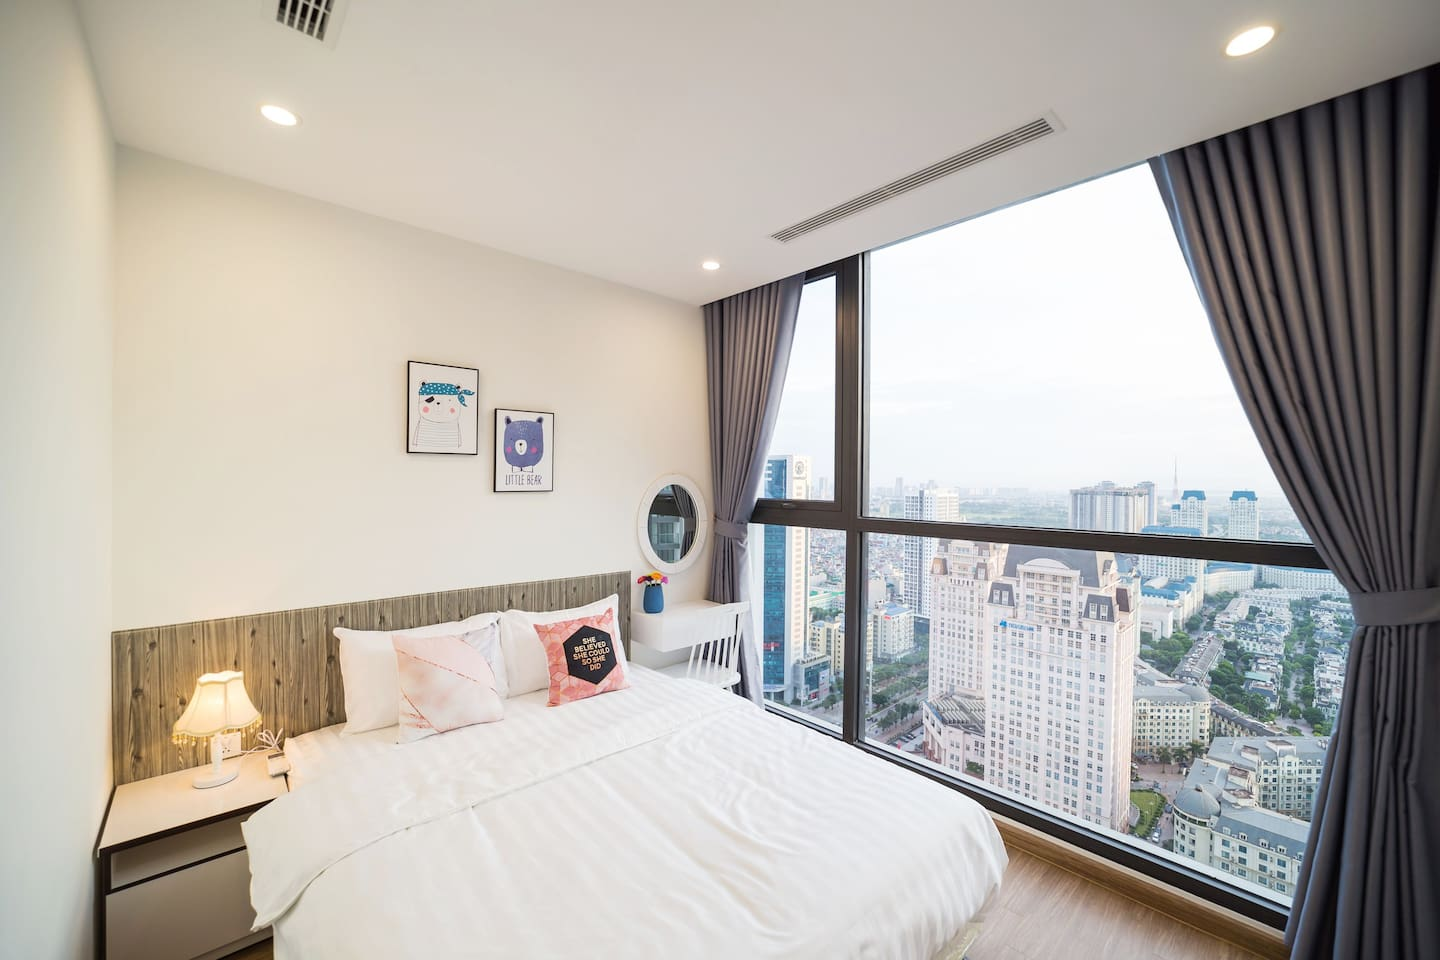 This main bedroom has an outstanding view from 35th floor. From here, you can see the whole picture of the city.